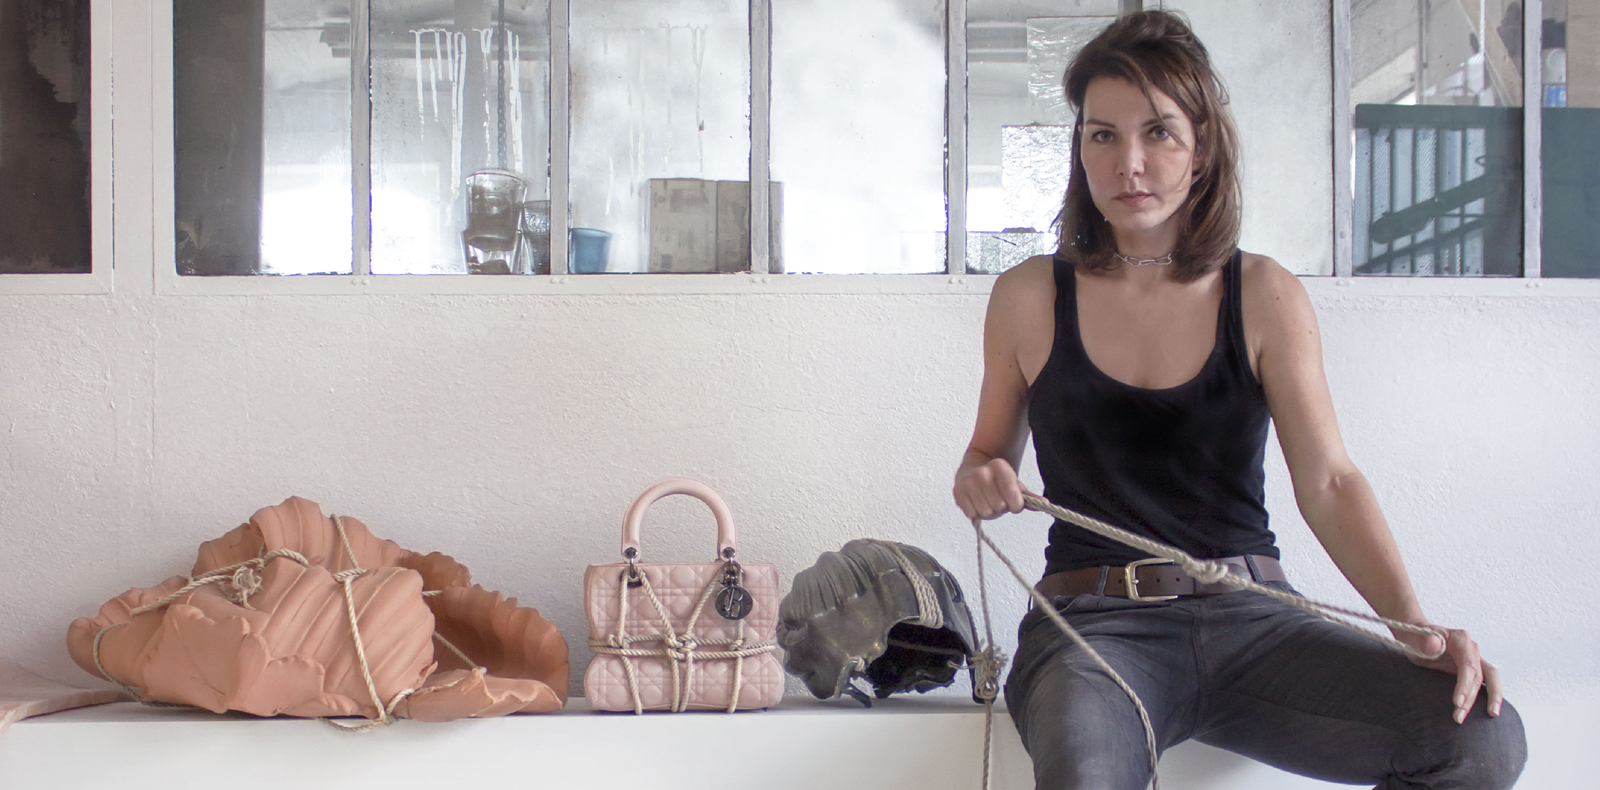 725d0098c11b Artist Morgane Tschiember transforms the Lady Dior bag into an erotic object